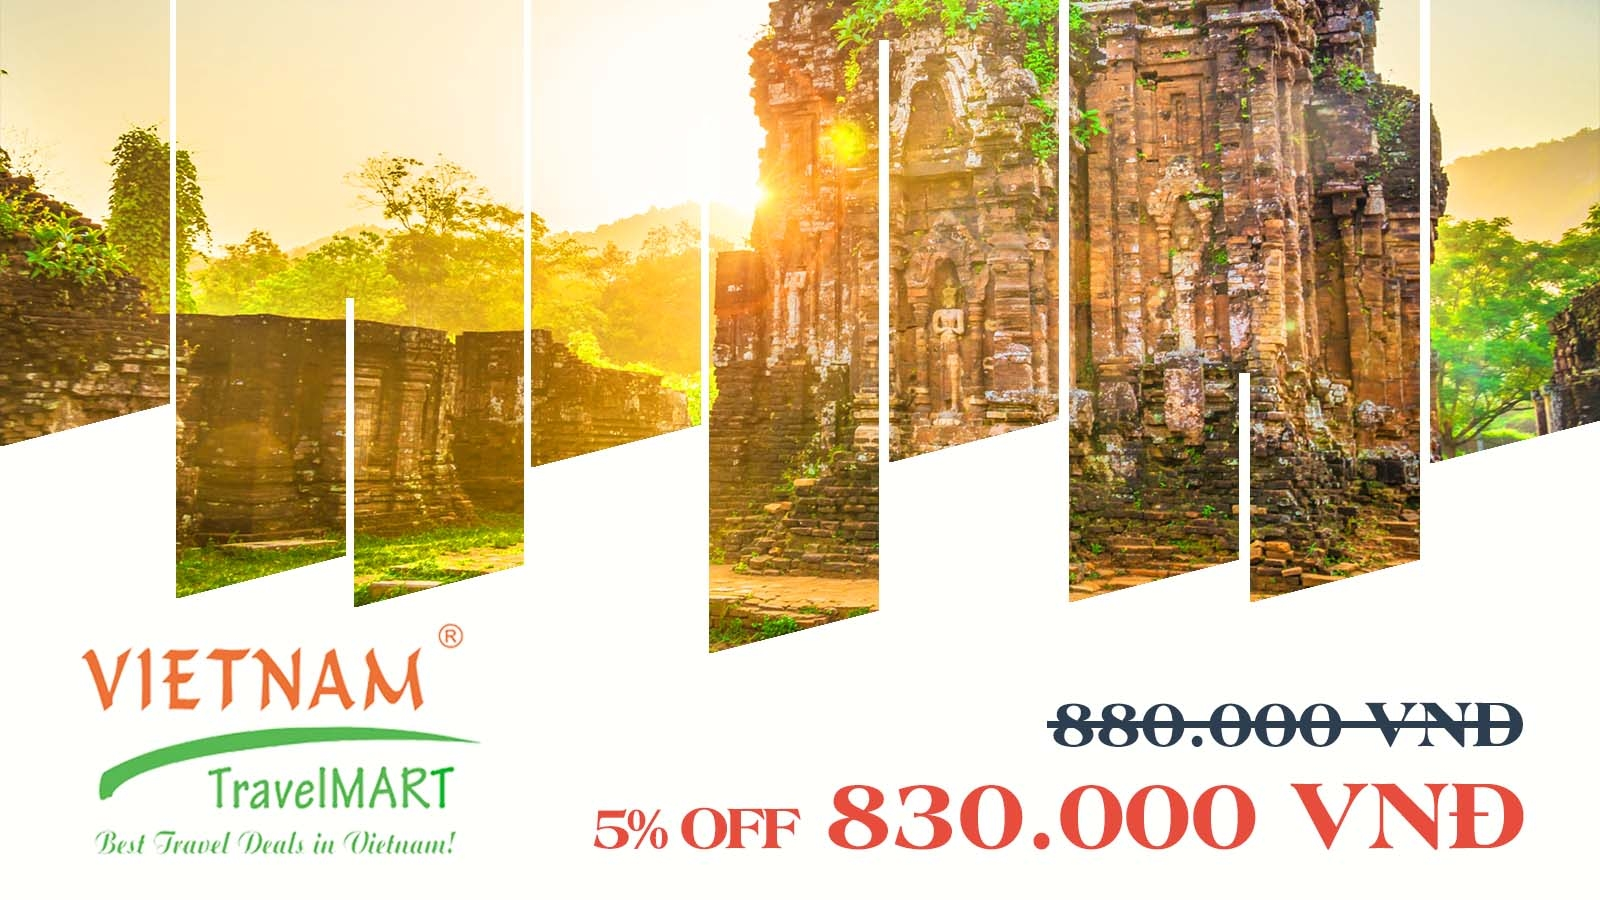 VIETNAM TRAVELMART JSC | 5% OFF MY SON HOLY LAND - HOI AN ANCIENT TOWN DAILY TOUR